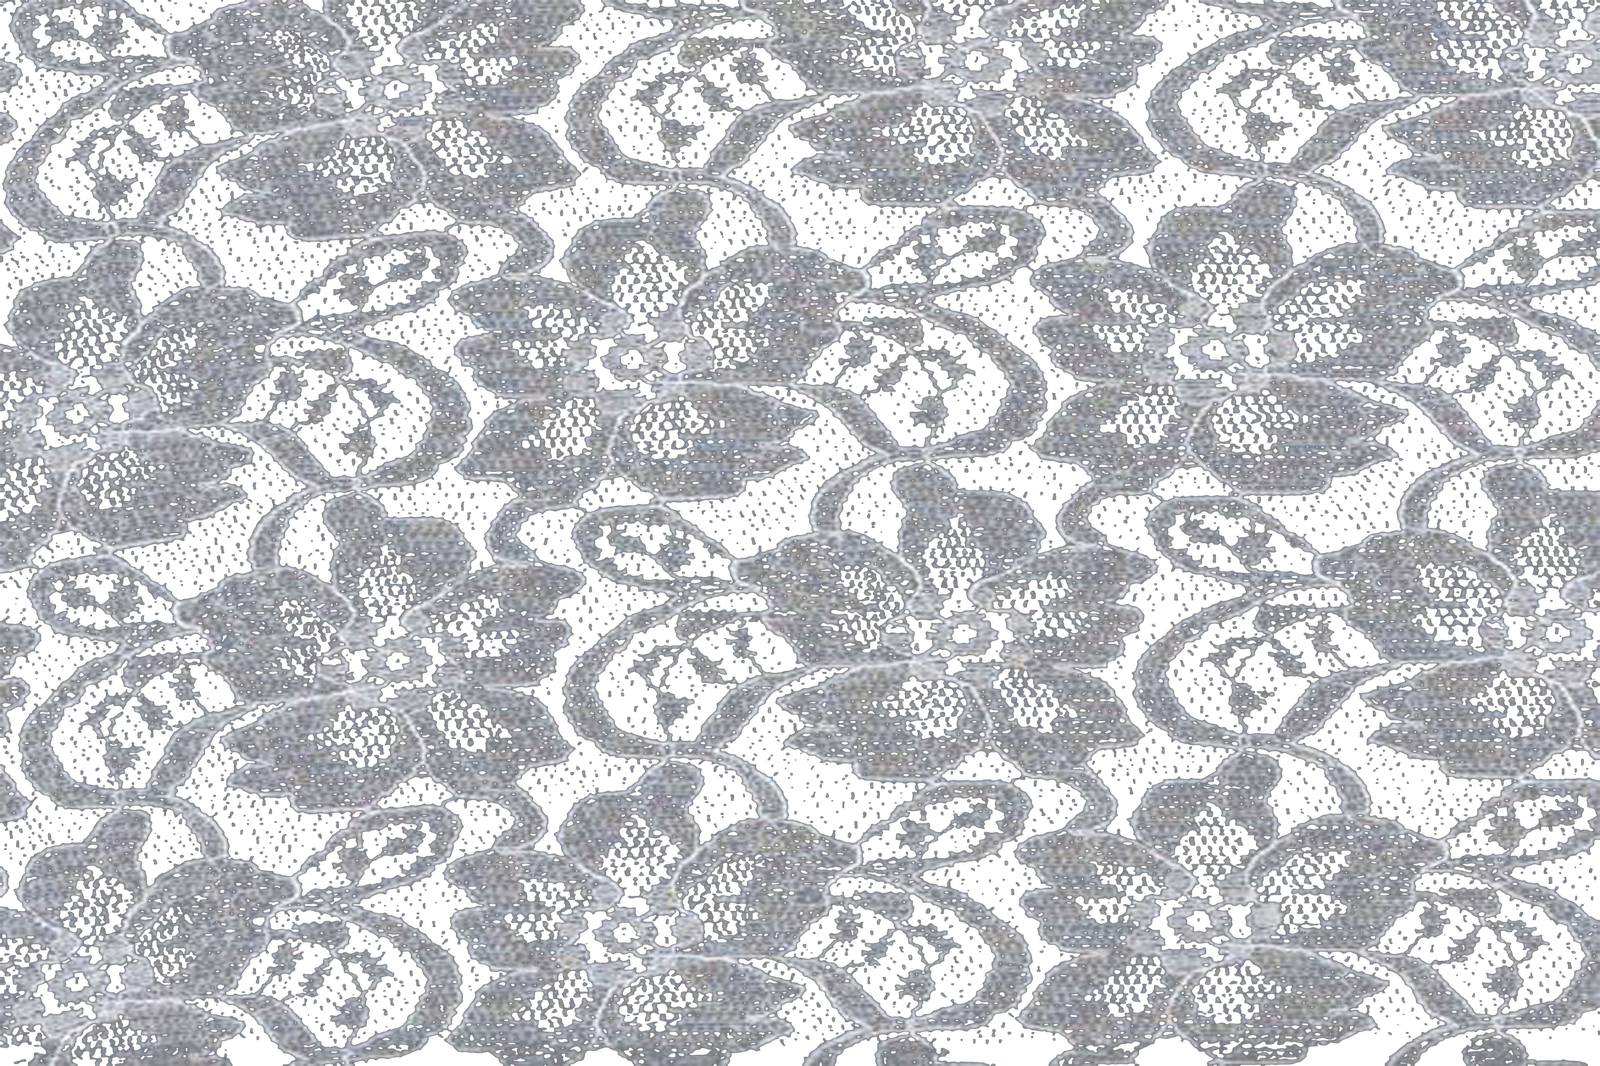 Lace overlay png. Free texture overlays